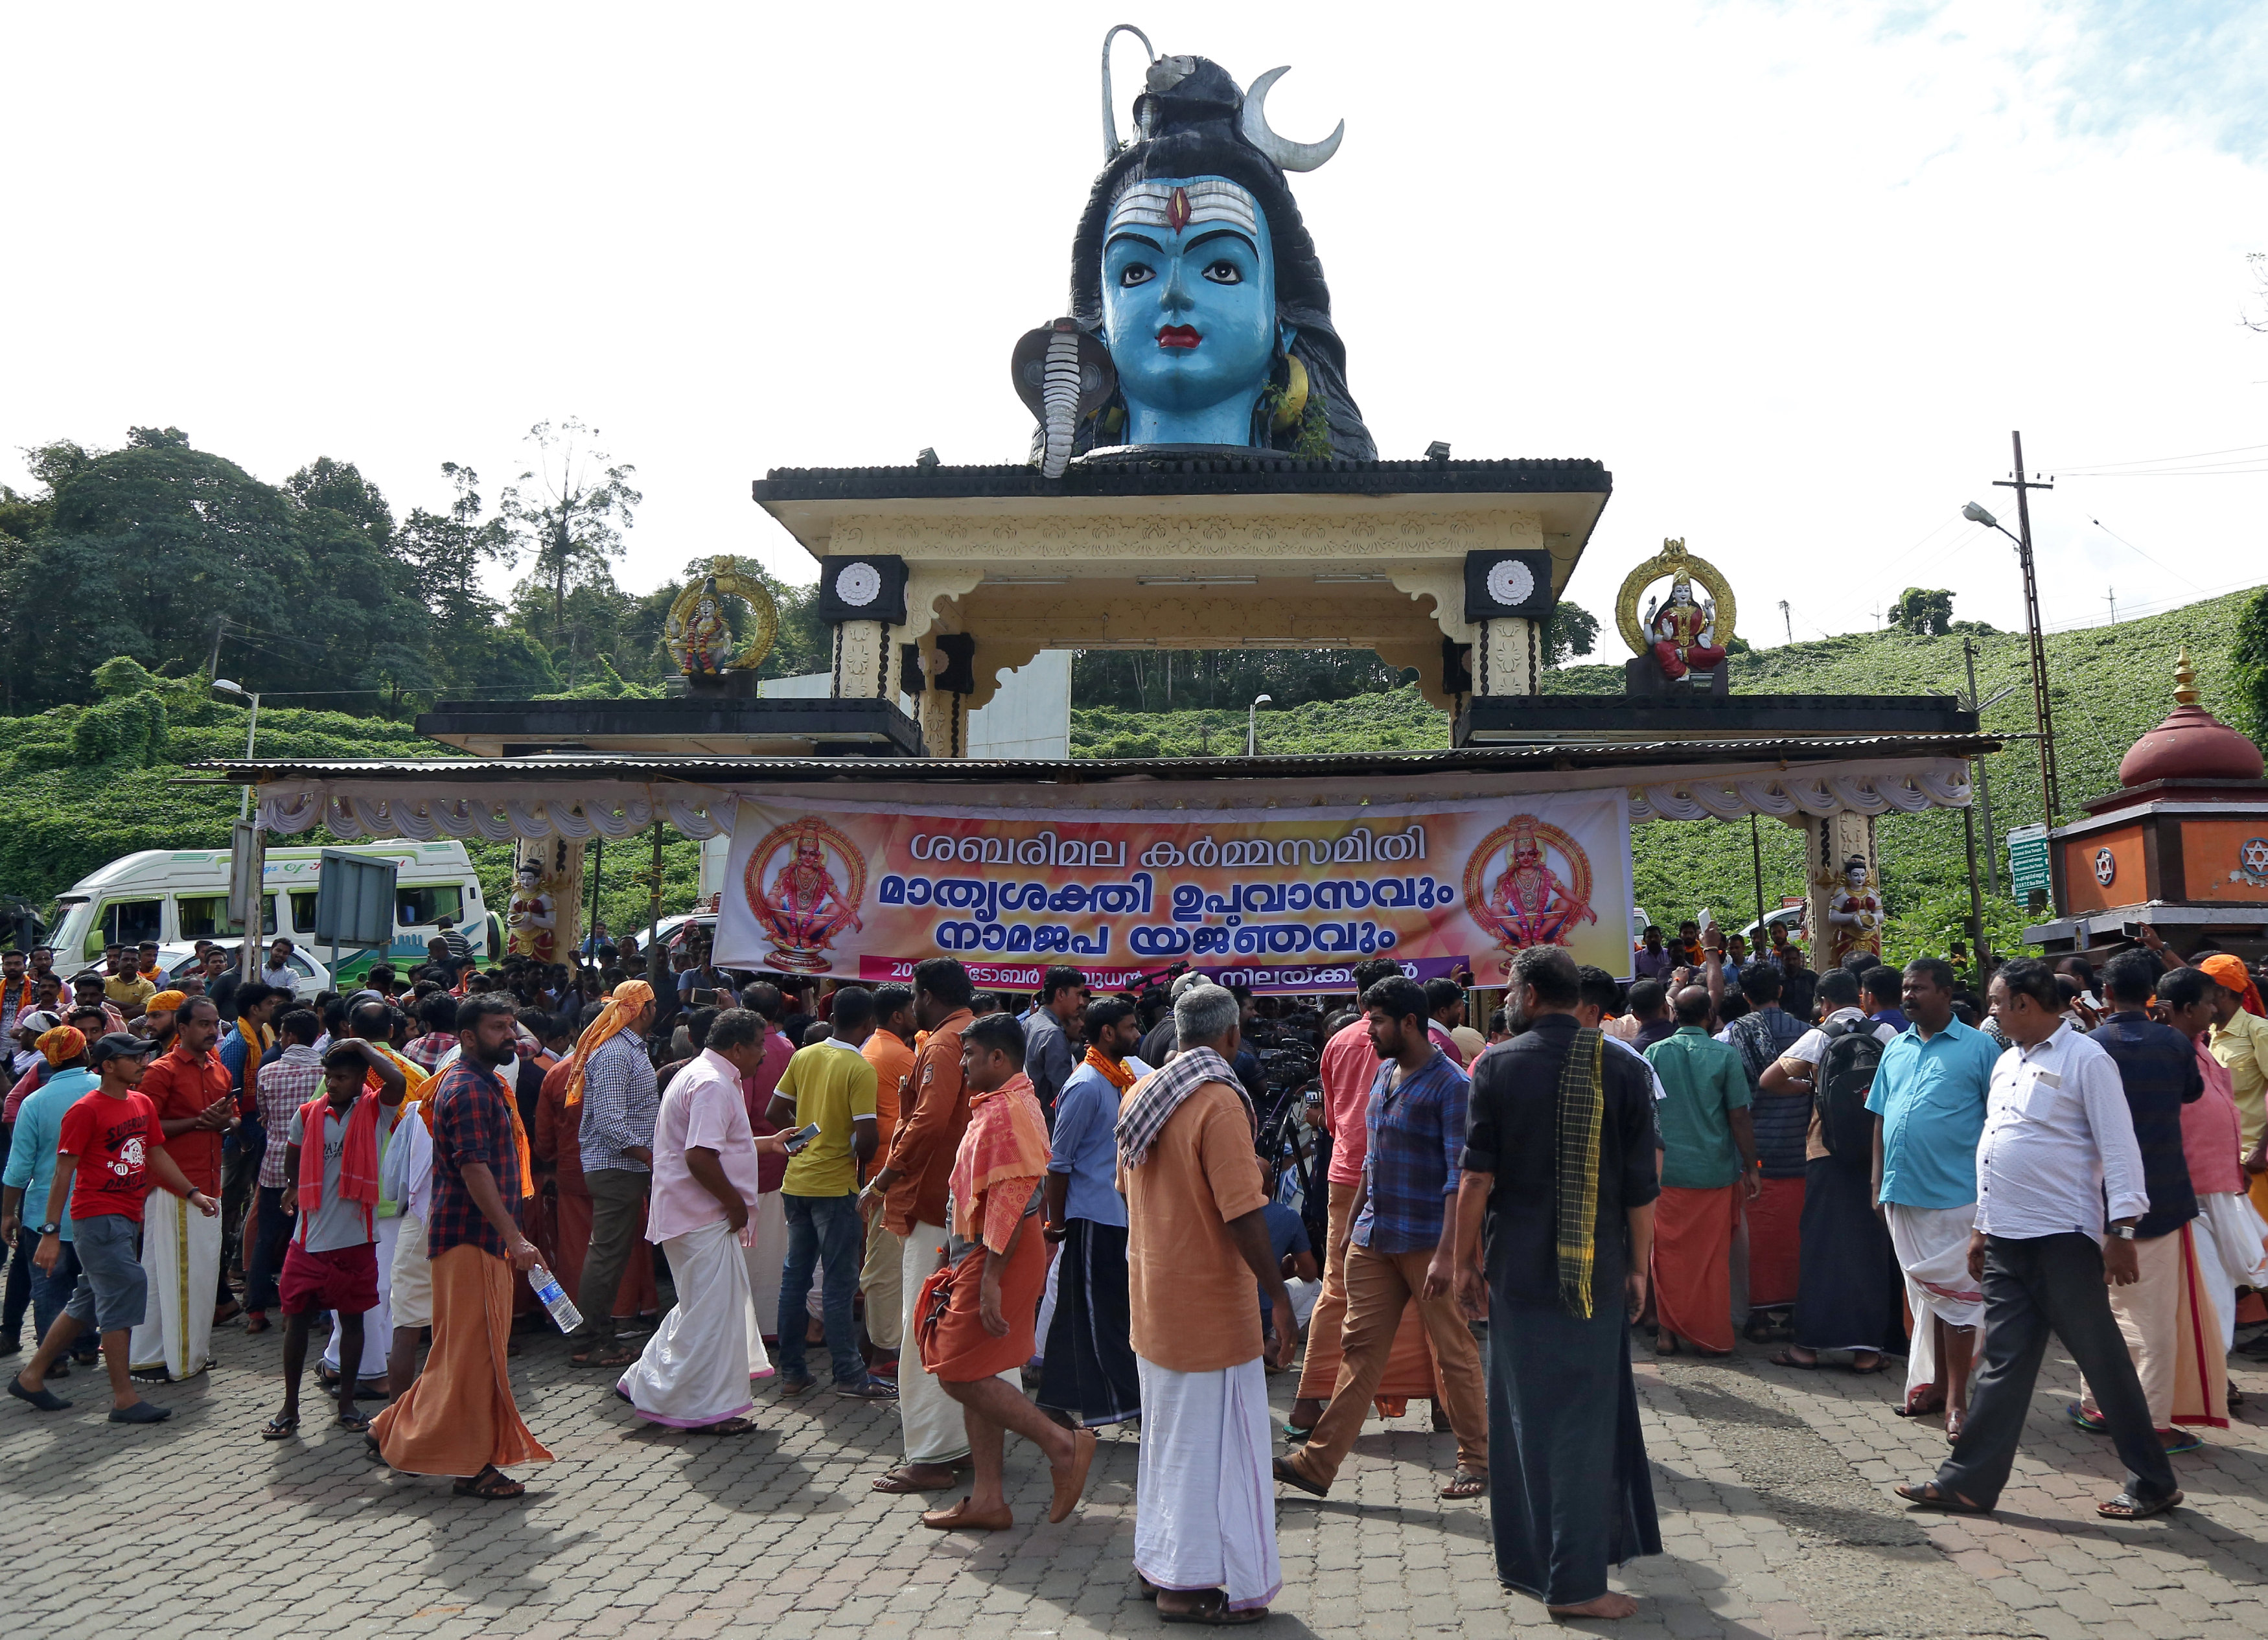 Hindu devotees gather at a temple during a protest against the lifting of ban by Supreme Court that allowed entry of women of menstruating age to the Sabarimala temple, at the Nilakkal Base Camp in Pathanamthitta district in the southern state of Kerala, India, October 17, 2018. Photo: REUTERS